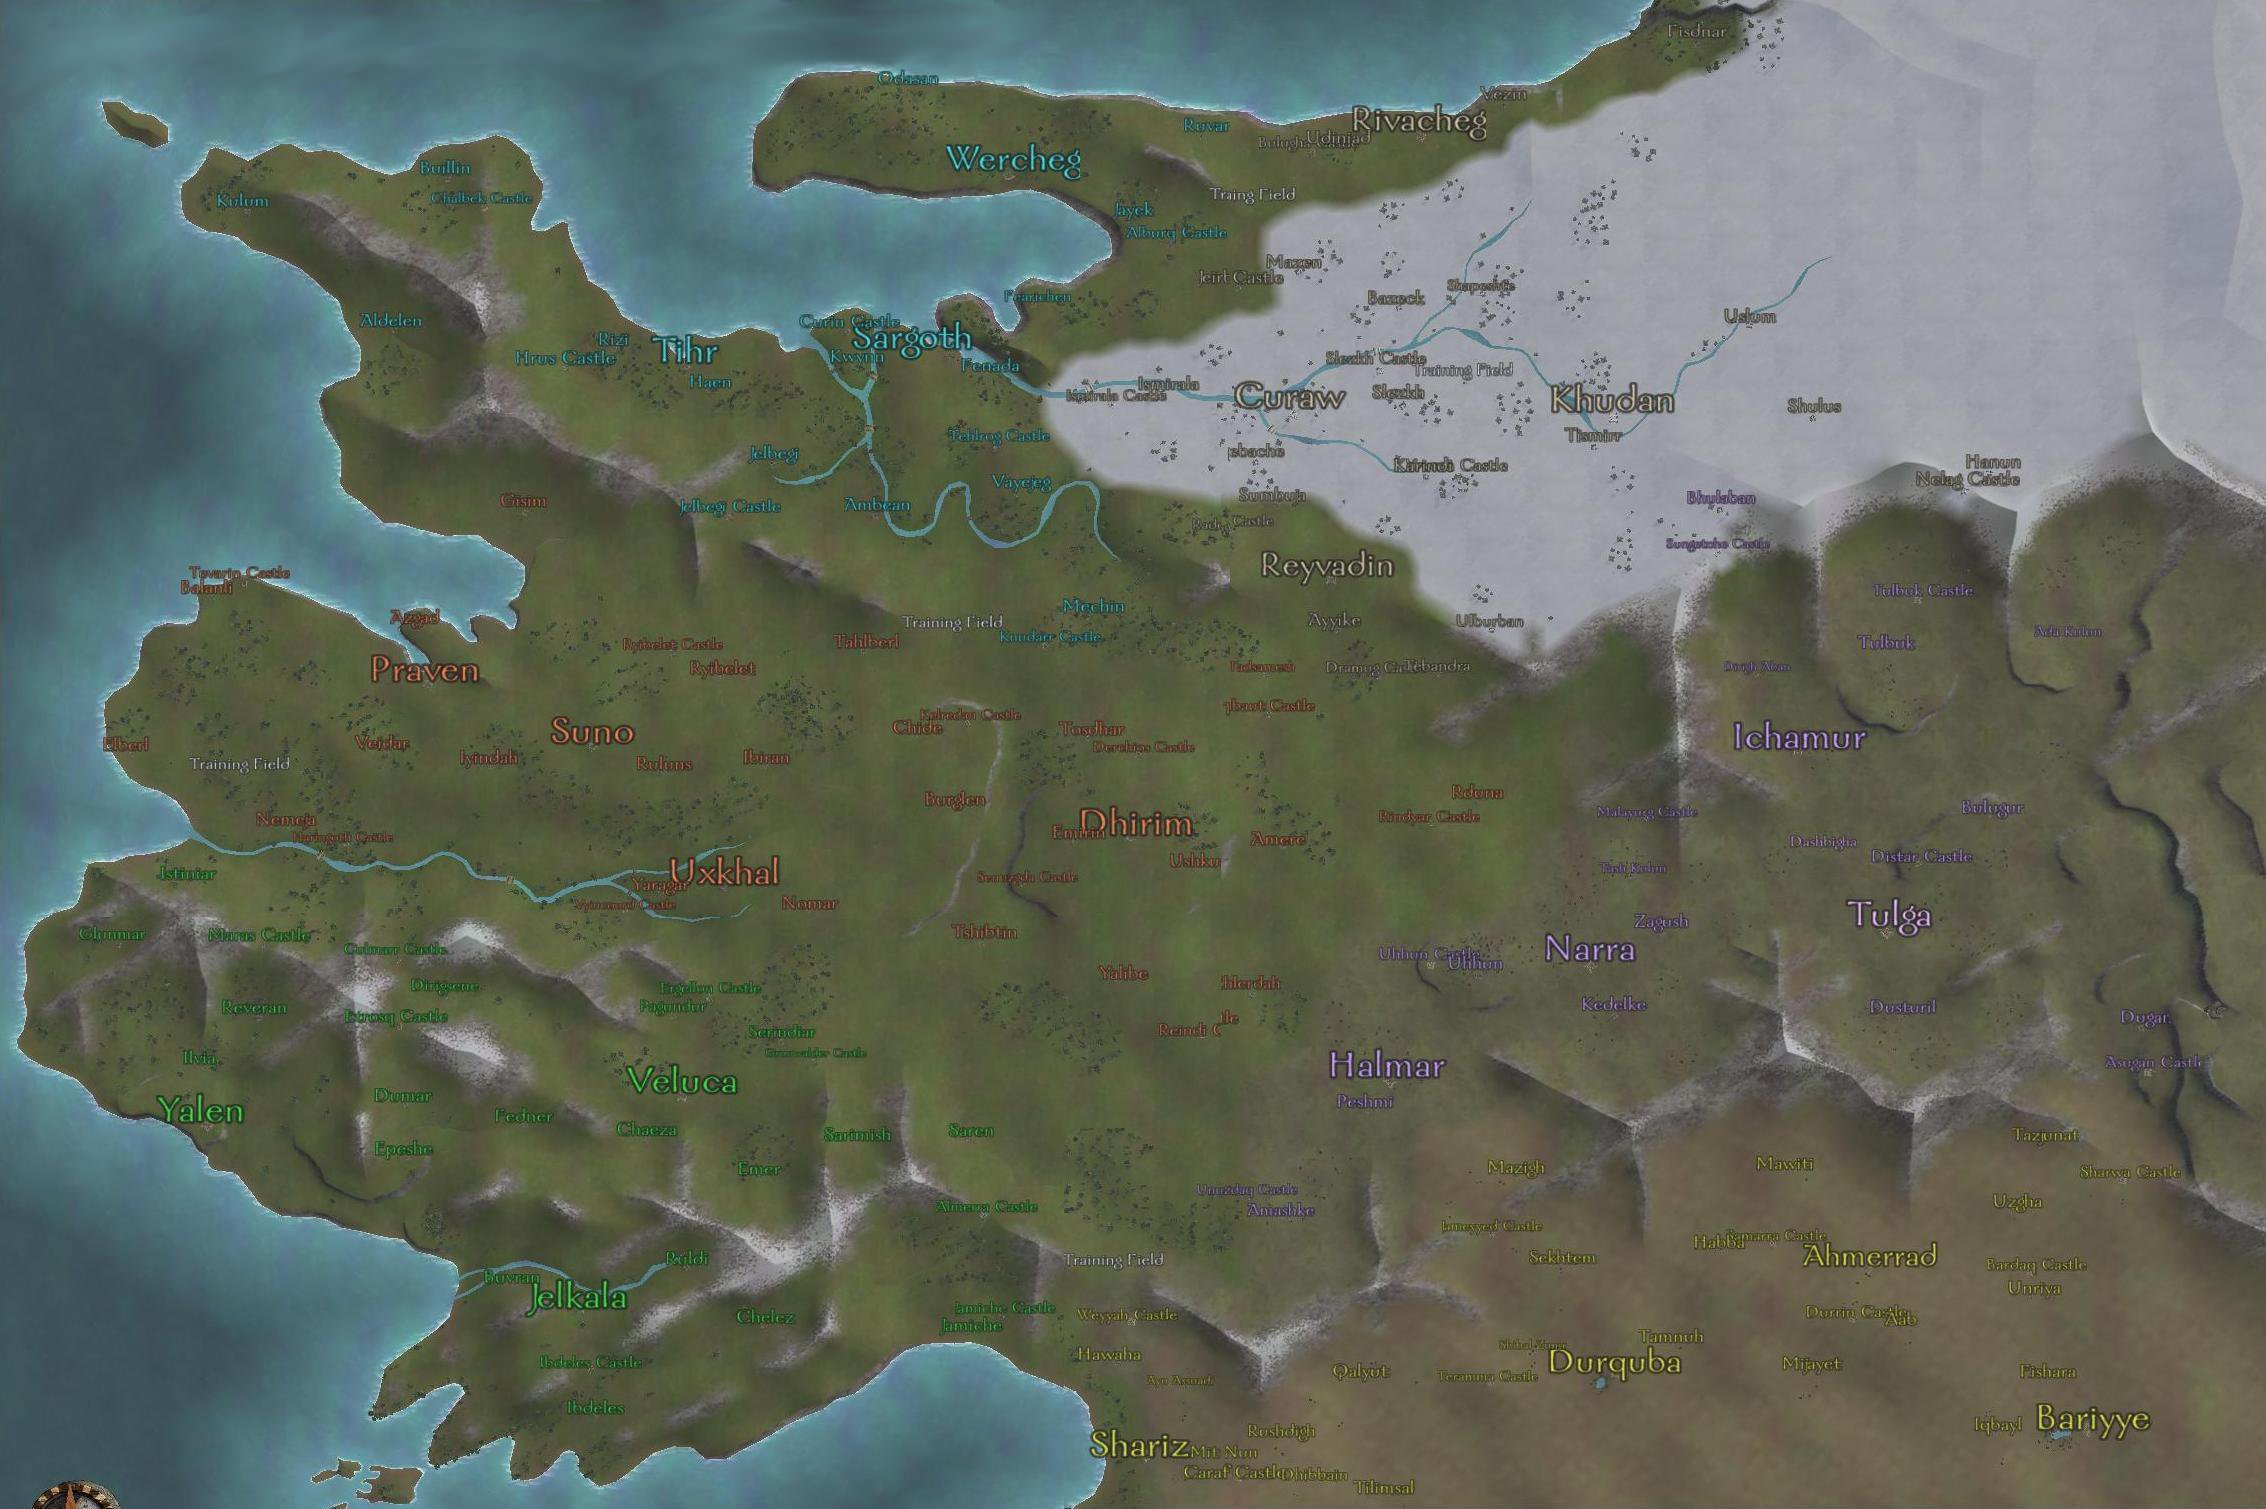 Mountblade warbandmaps strategywiki the video game the complete world map view or download the full size version gumiabroncs Images